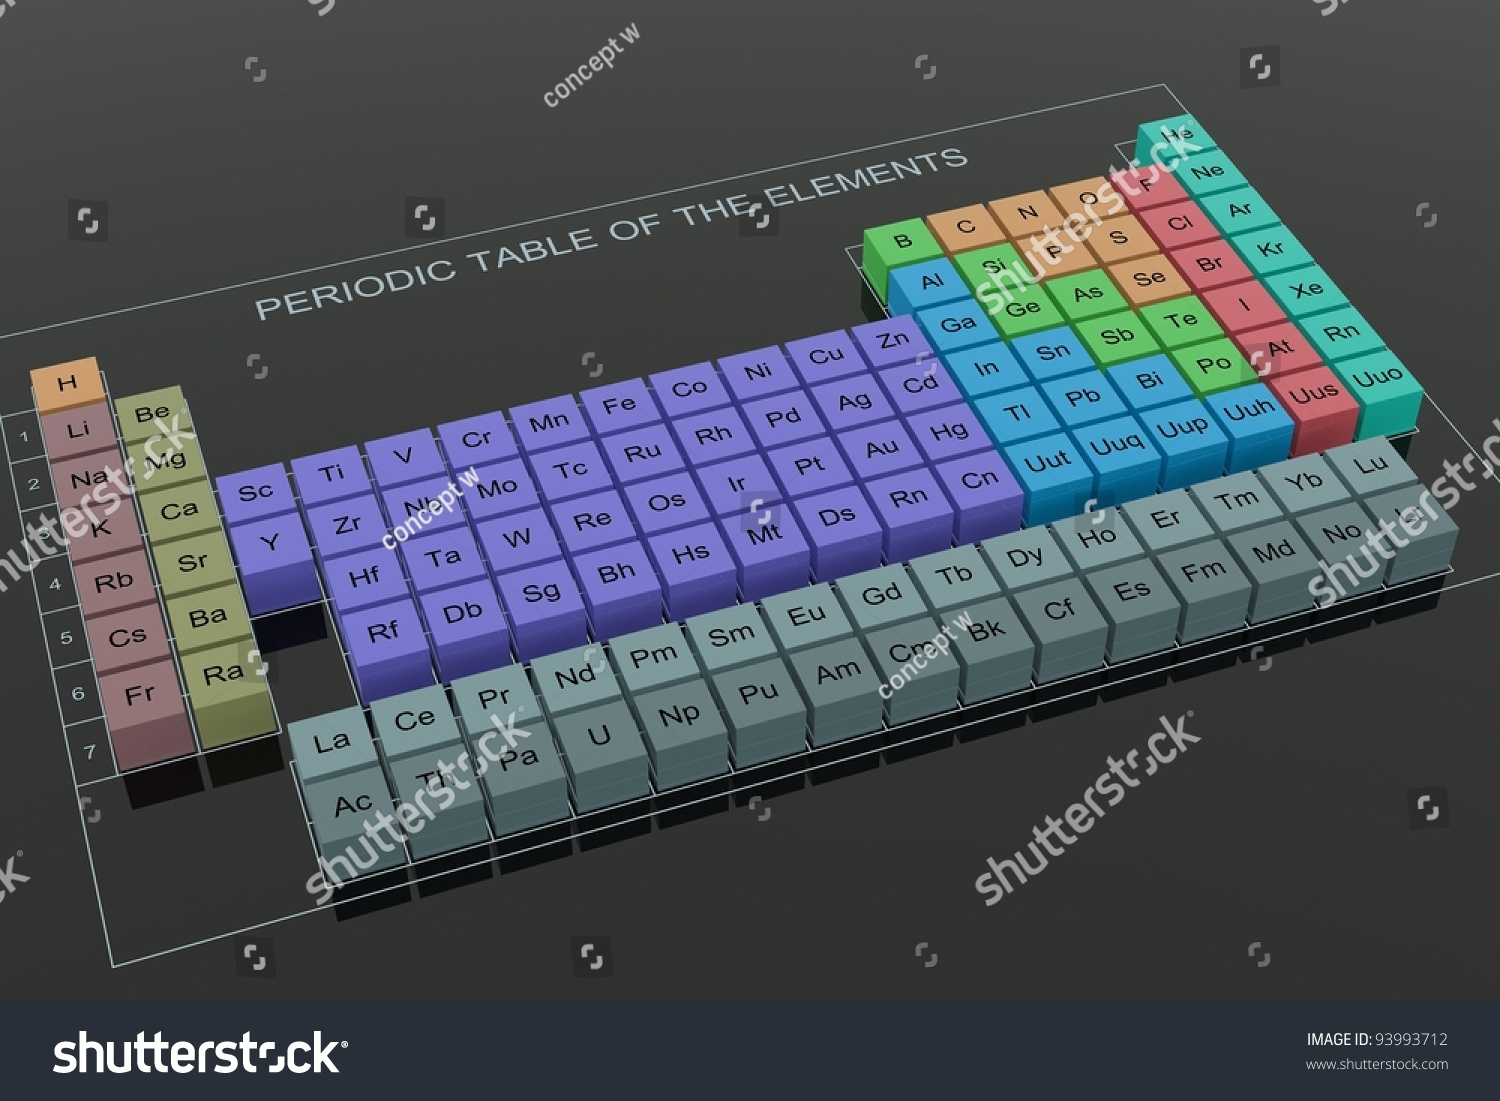 Periodic table elements perspective on black stock illustration periodic table of the elements perspective on black glass background urtaz Images